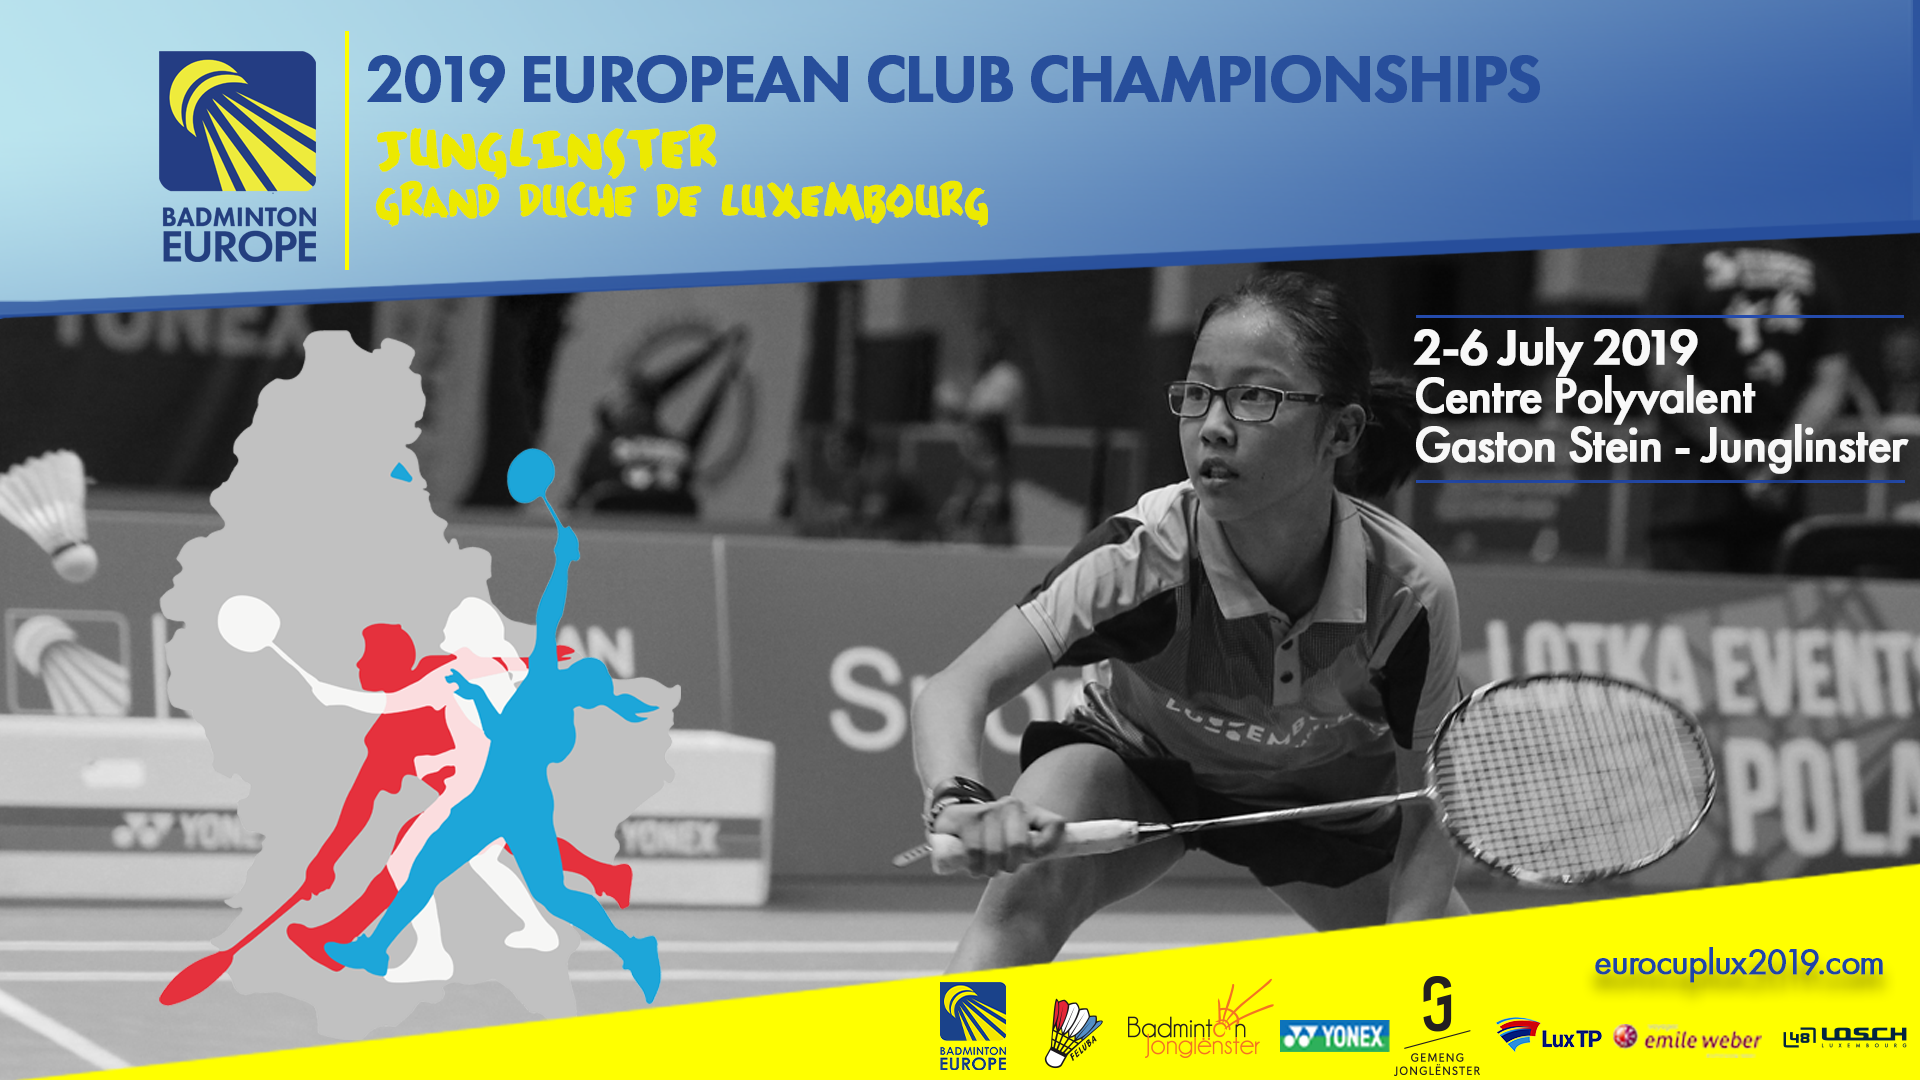 European Club Championships : preliminary rounds at 10h, 14h and 18h